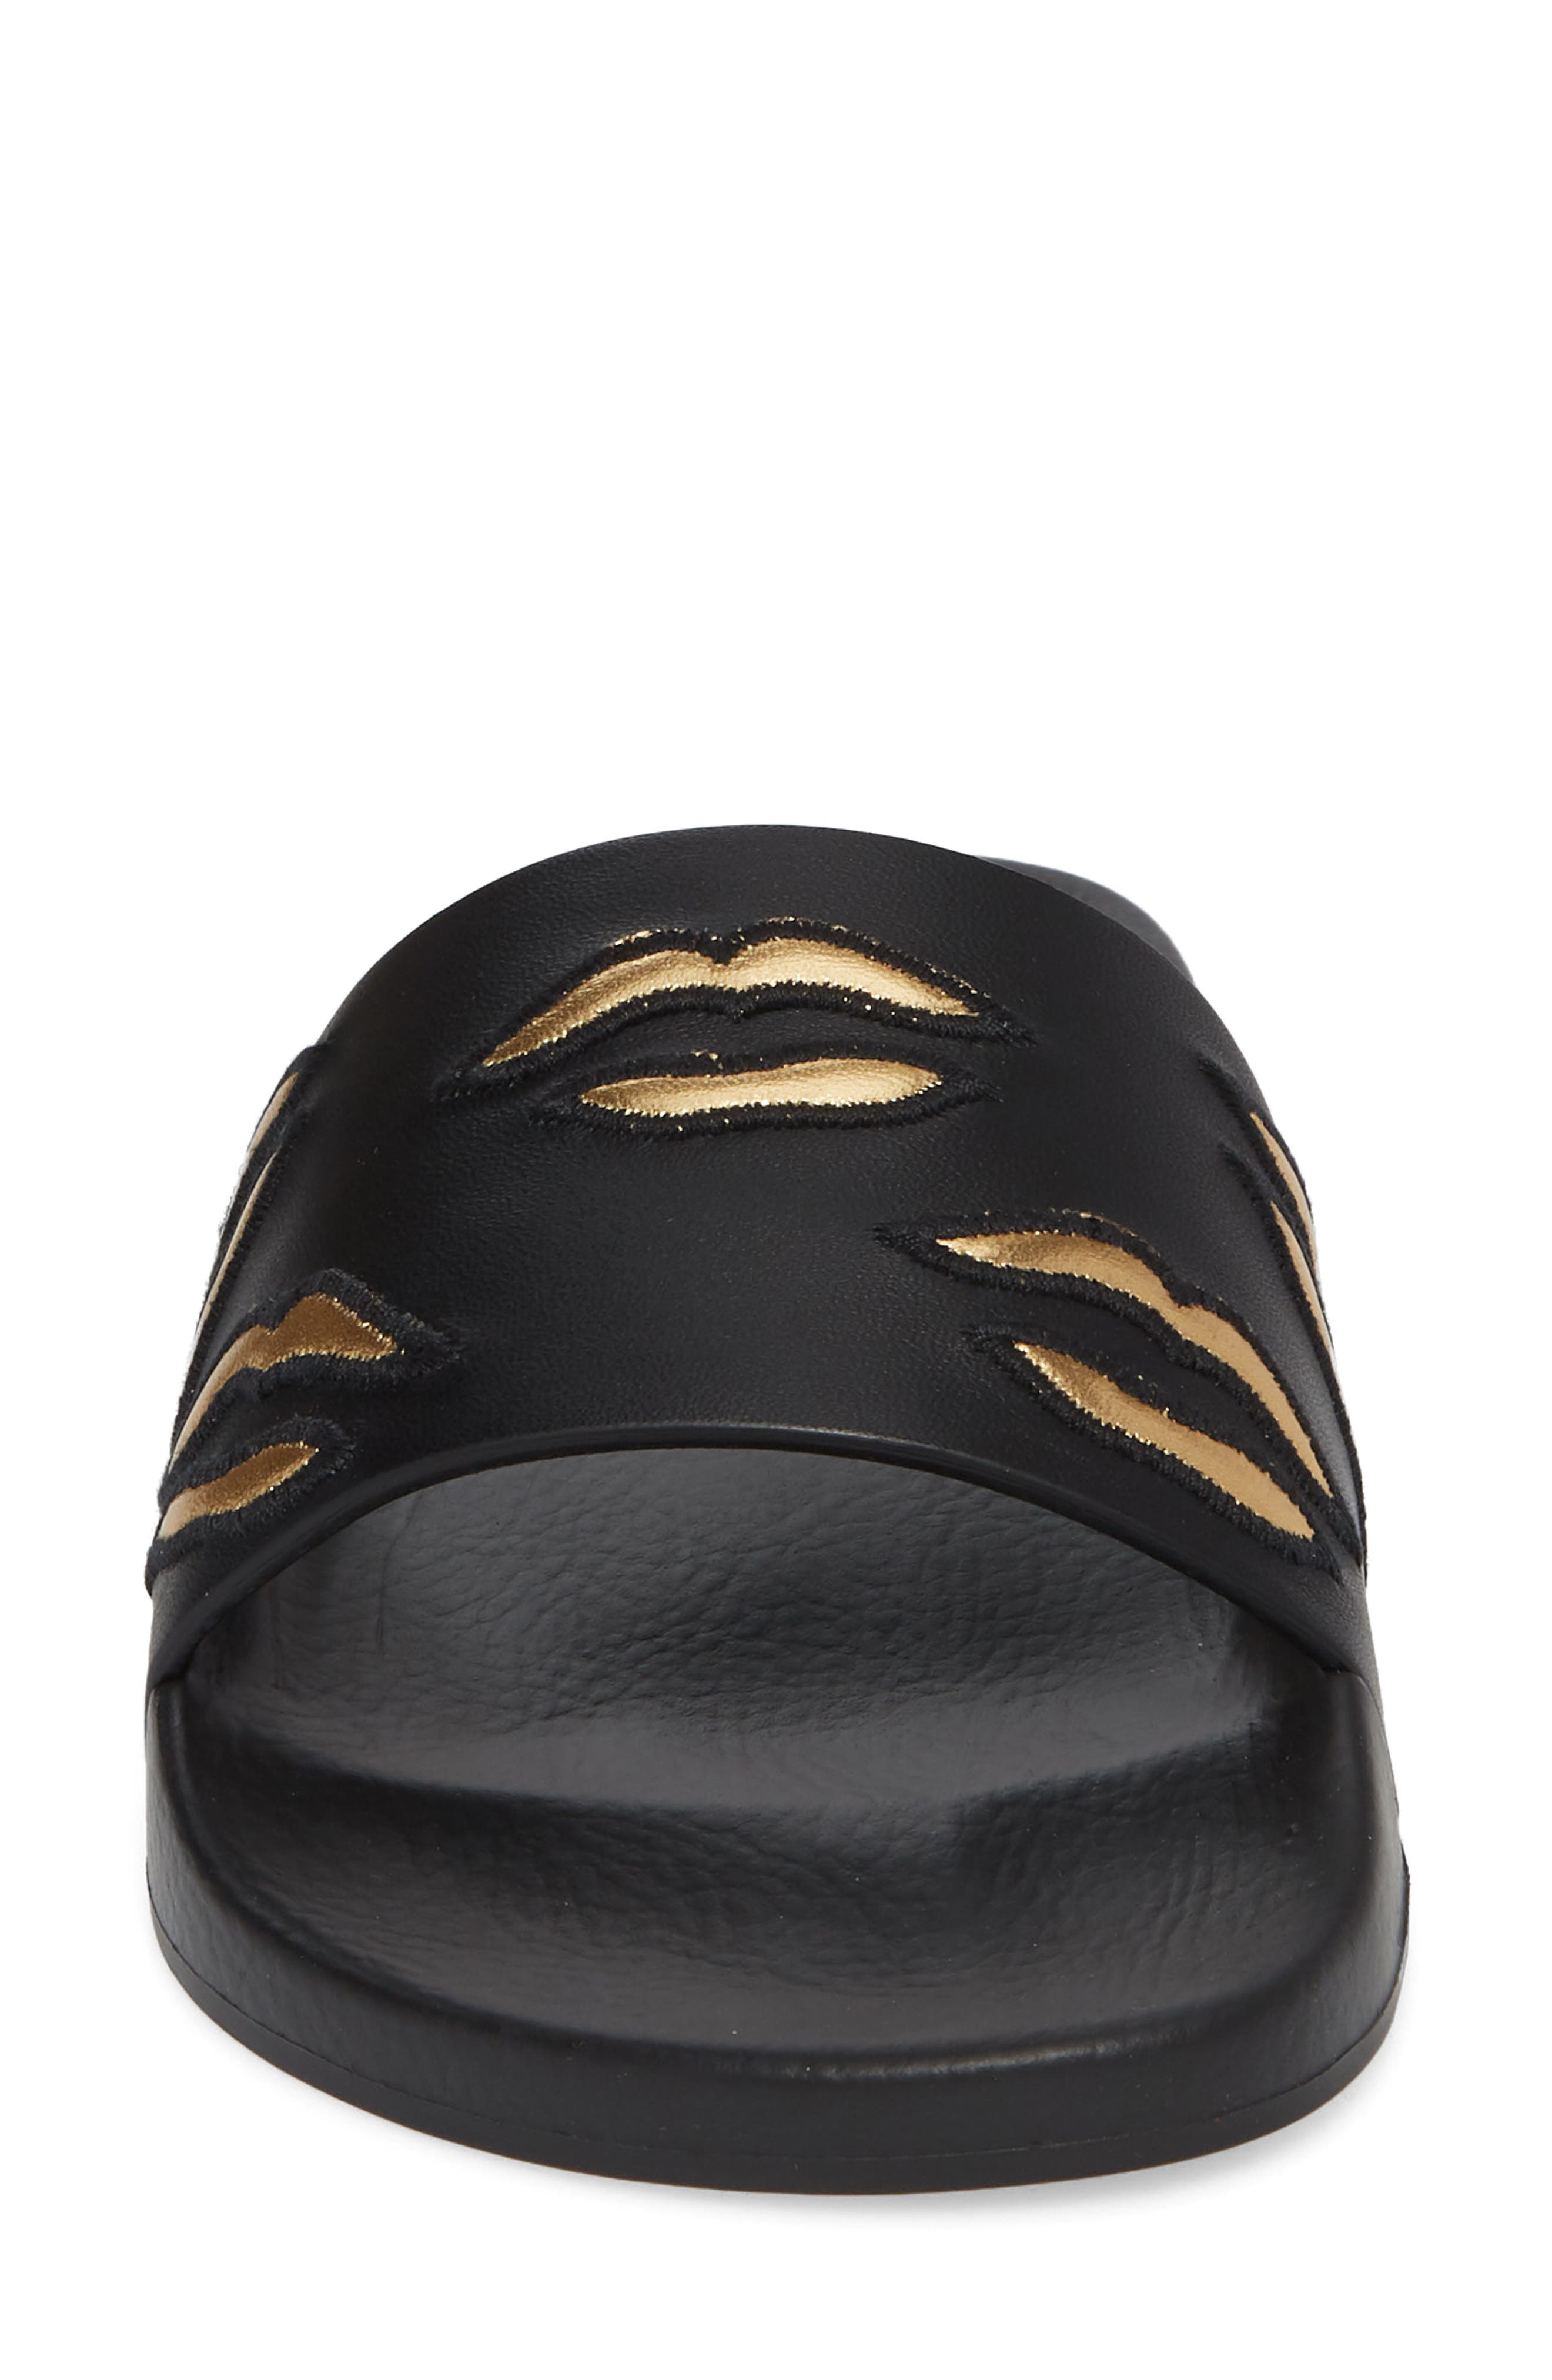 Kiss Slide Sandal,                             Alternate thumbnail 4, color,                             BLACK/ GOLD